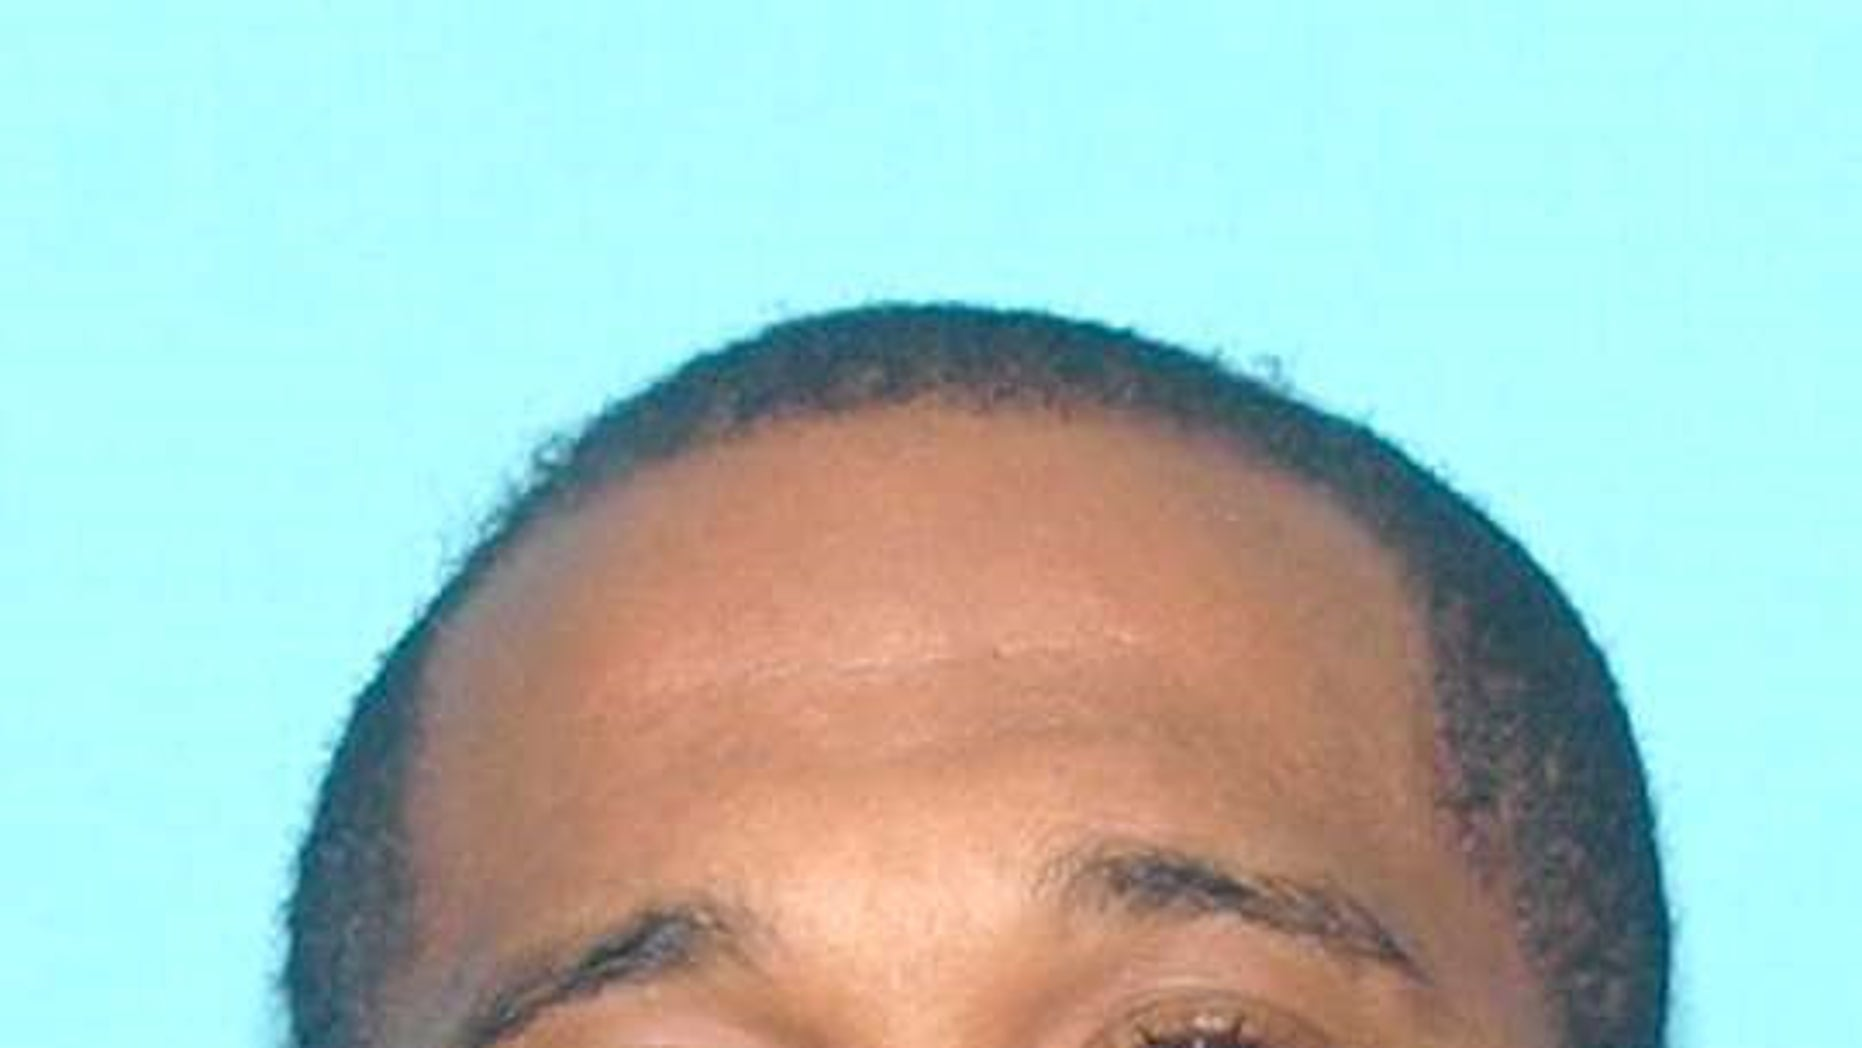 Eric Richardson, 32, was indicted on Thursday, officials said.